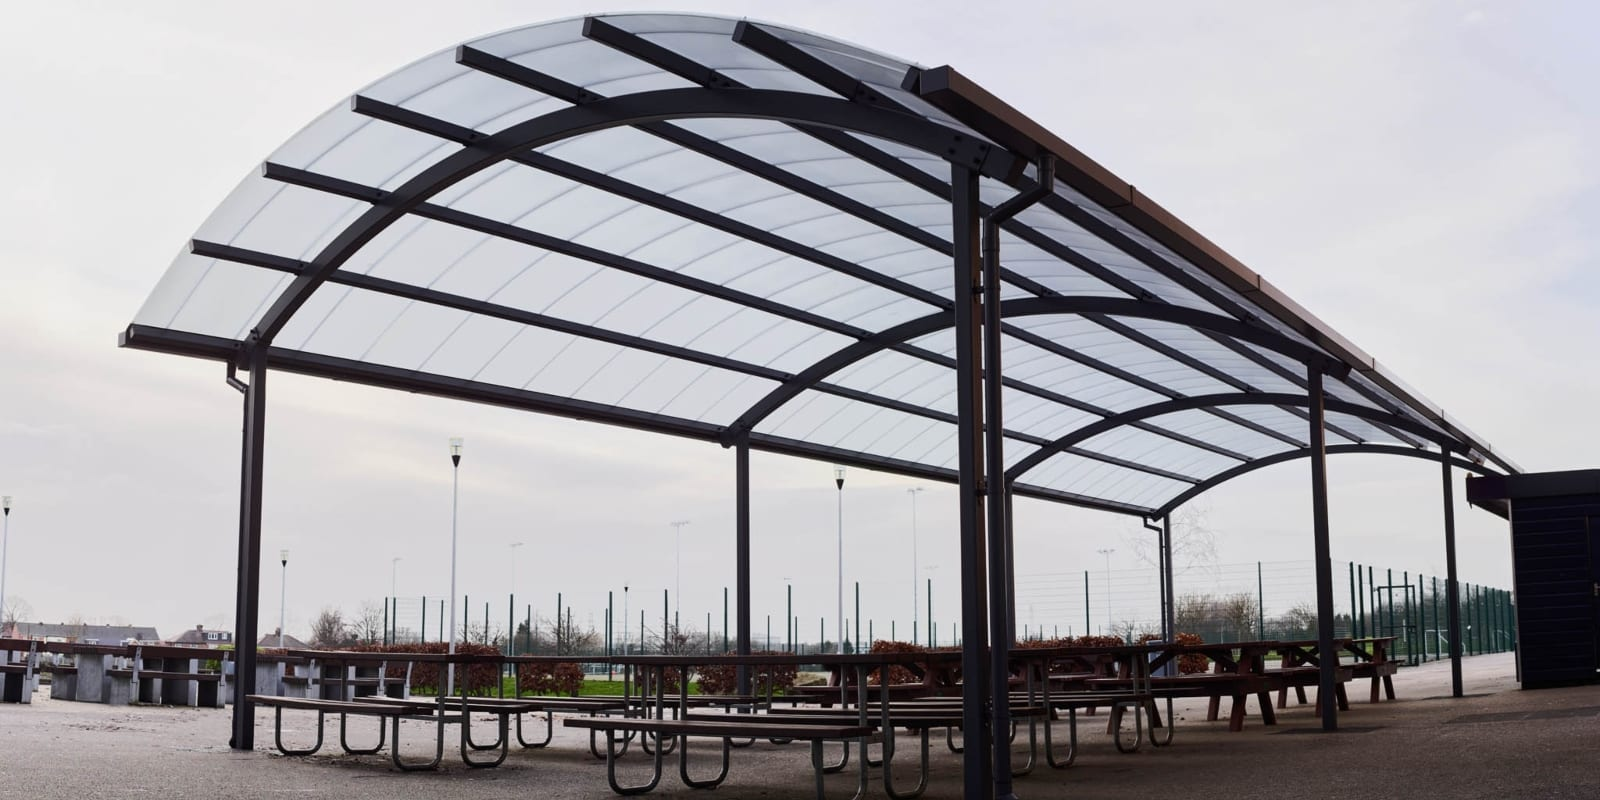 Dining shelter we made for Blessed John Henry Newman College